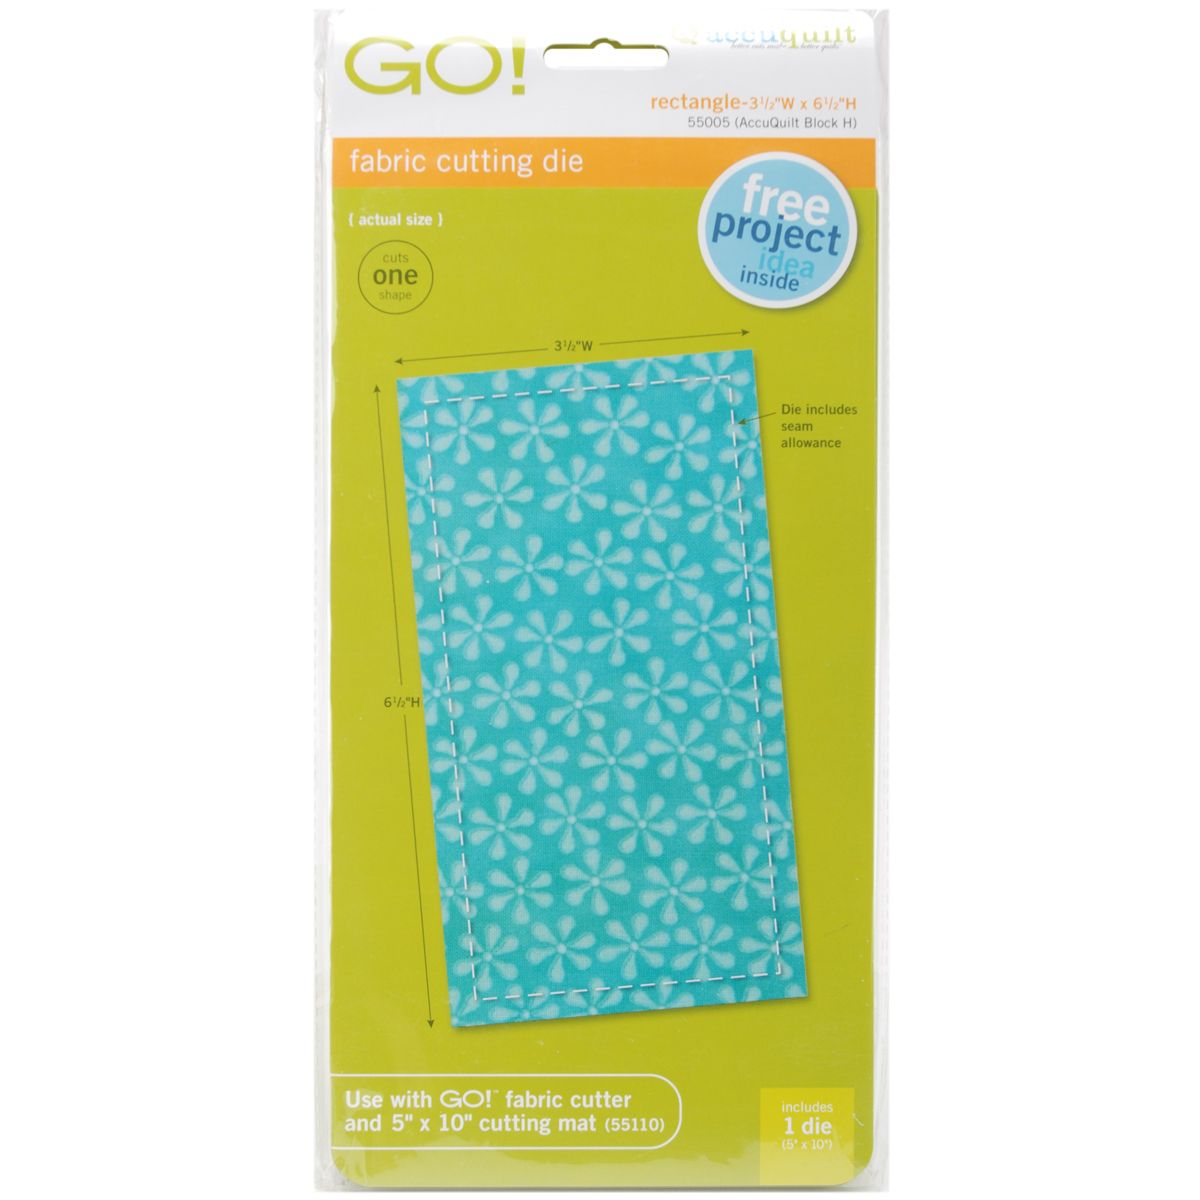 Accuquilt GO! Fabric Cutting Dies-Rectangle 3-1/2